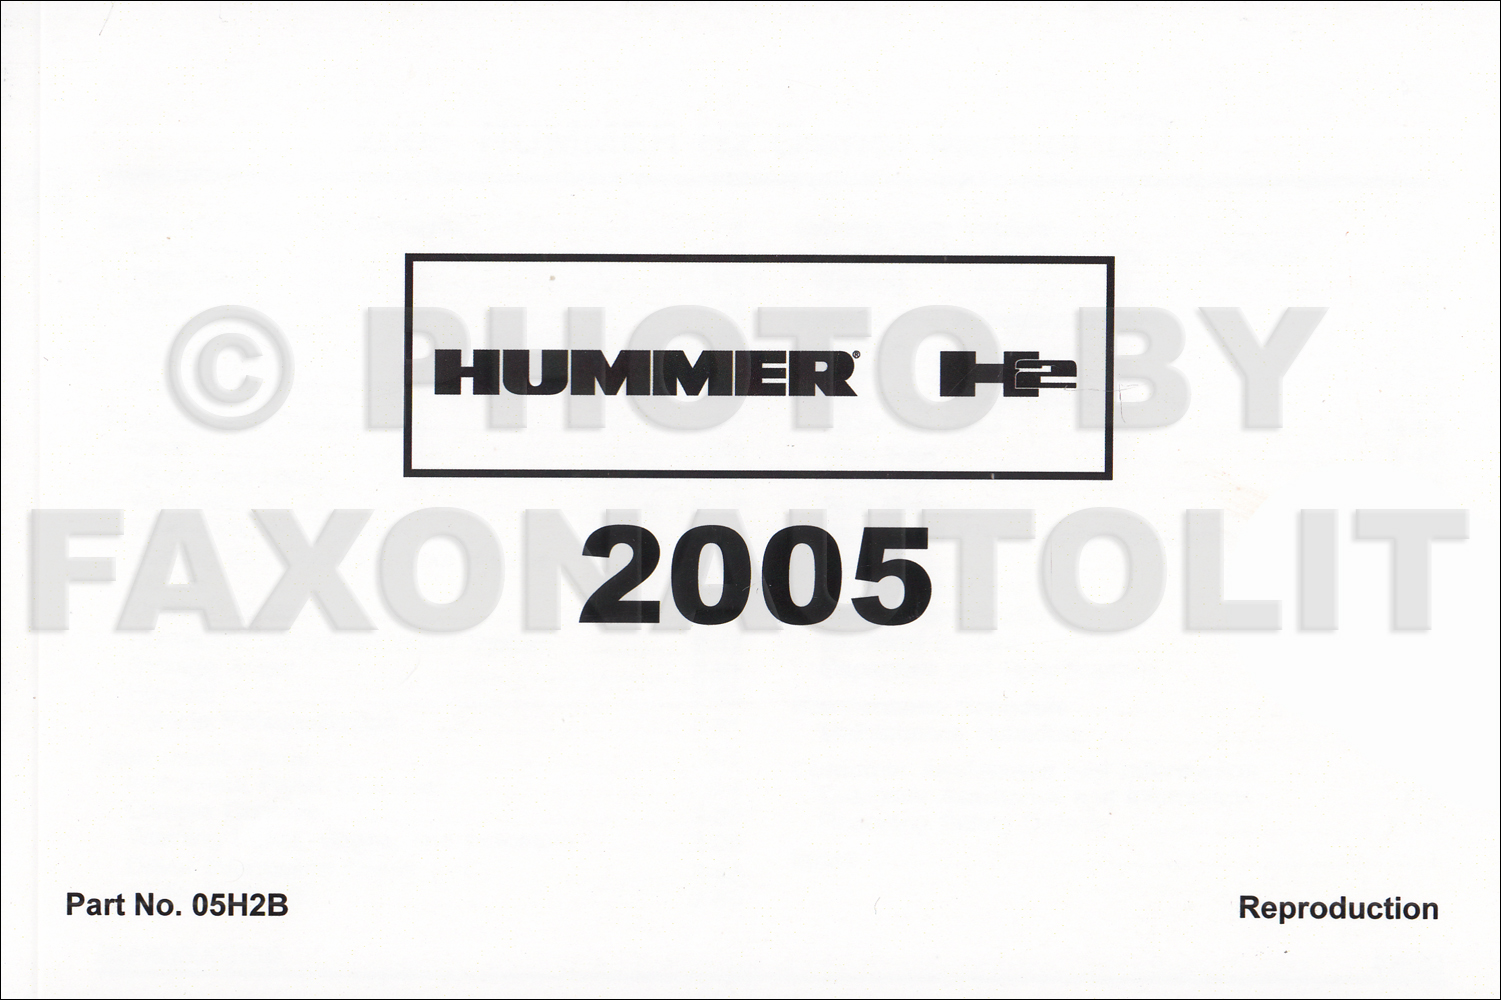 2005 Hummer H2 Owner's Manual Reprint